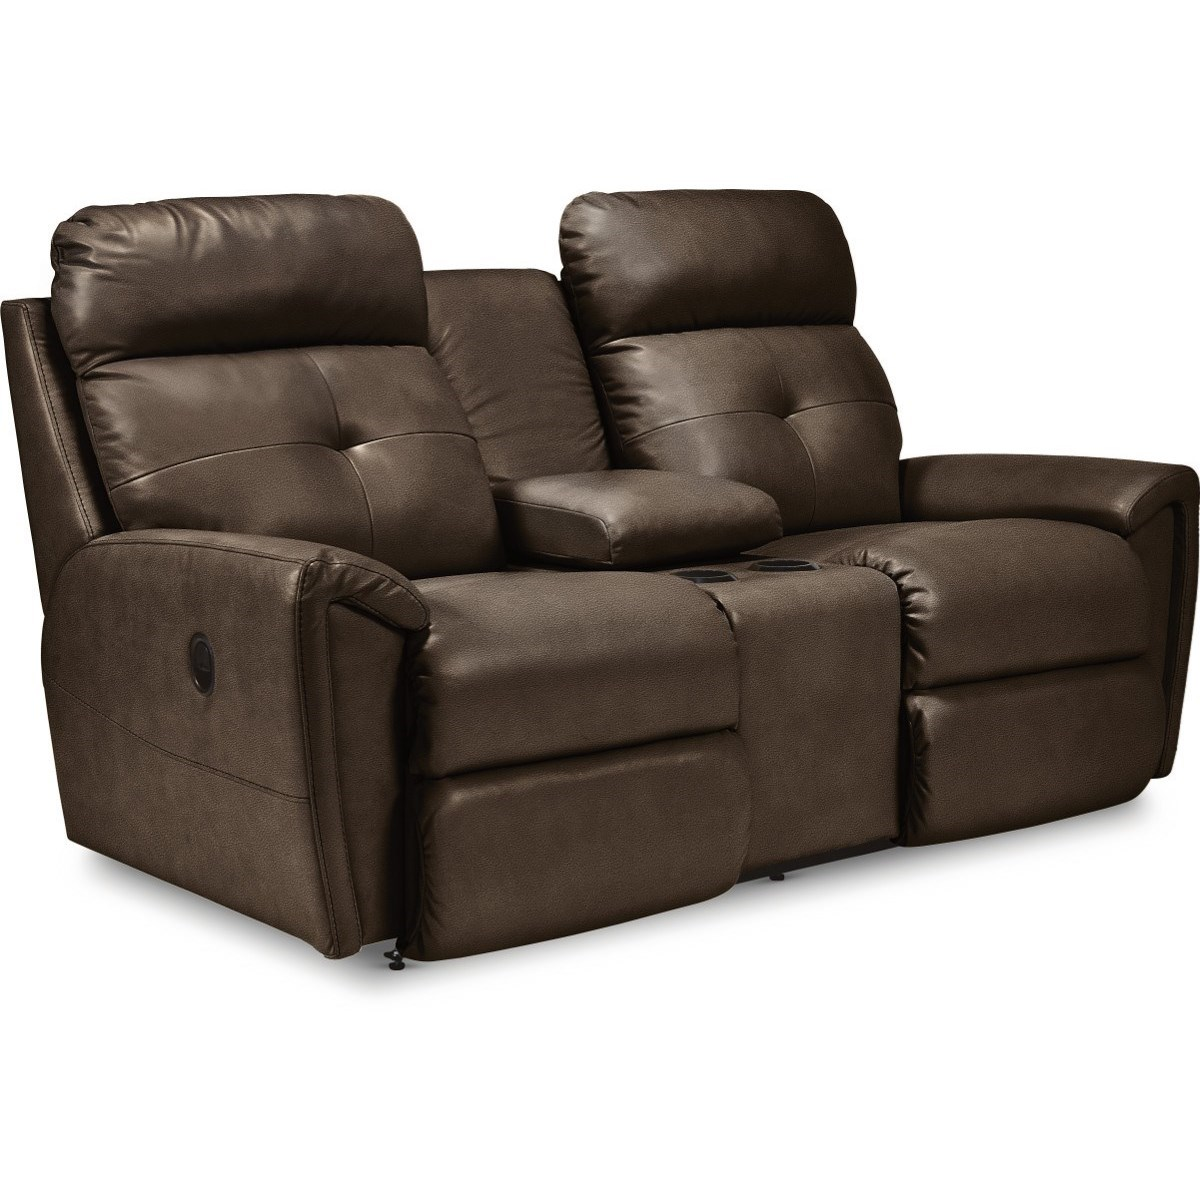 Contemporary Reclining Loveseat with Cupholder Storage Console